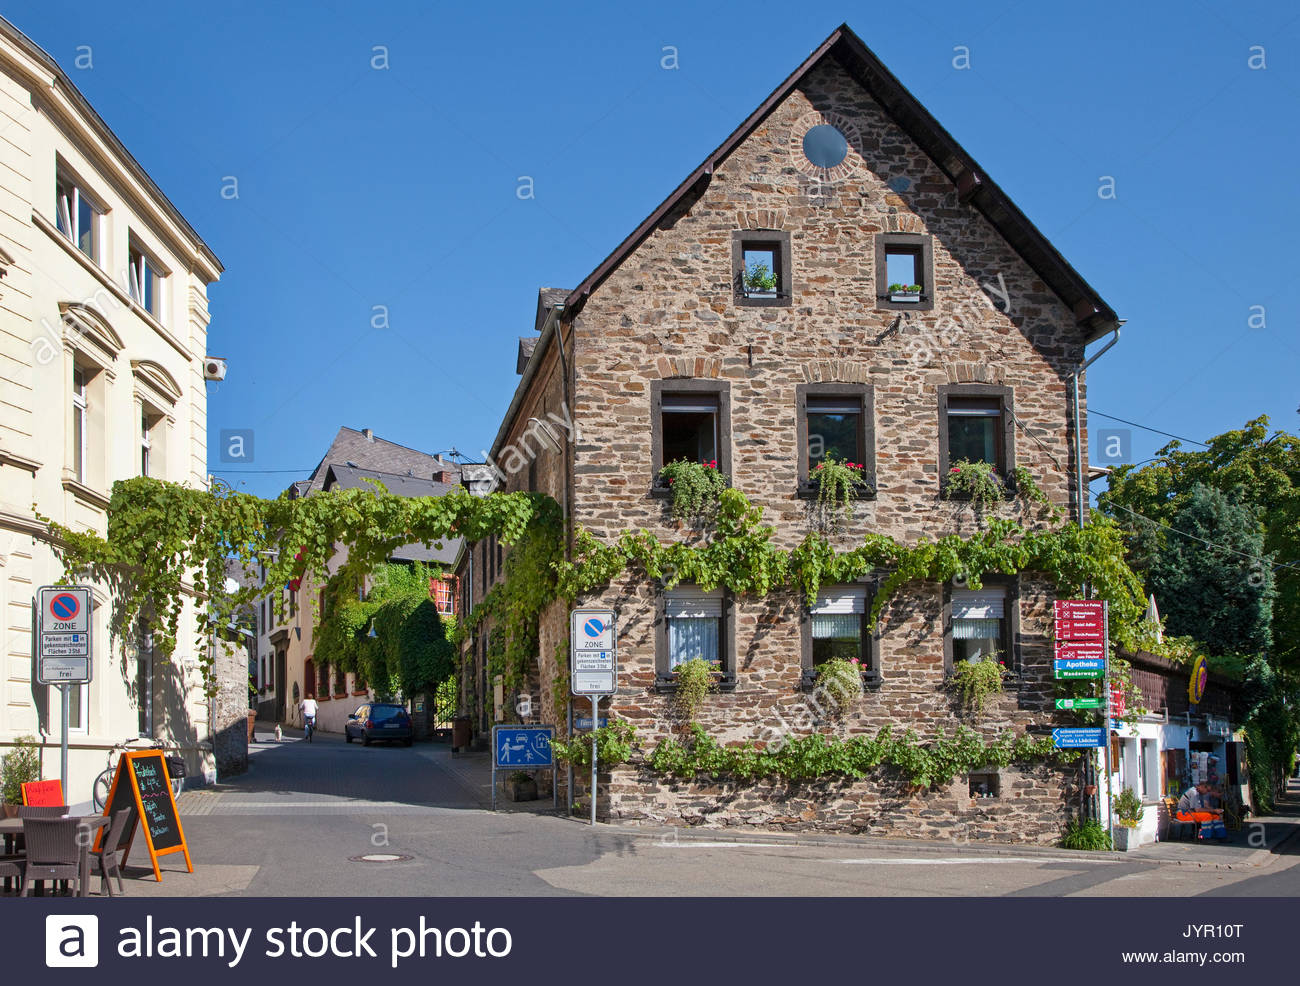 Wochenmarkt The Pfalz and Rhine Terrace, Koblenz Stock Photos & Koblenz Stock Images - Alamy